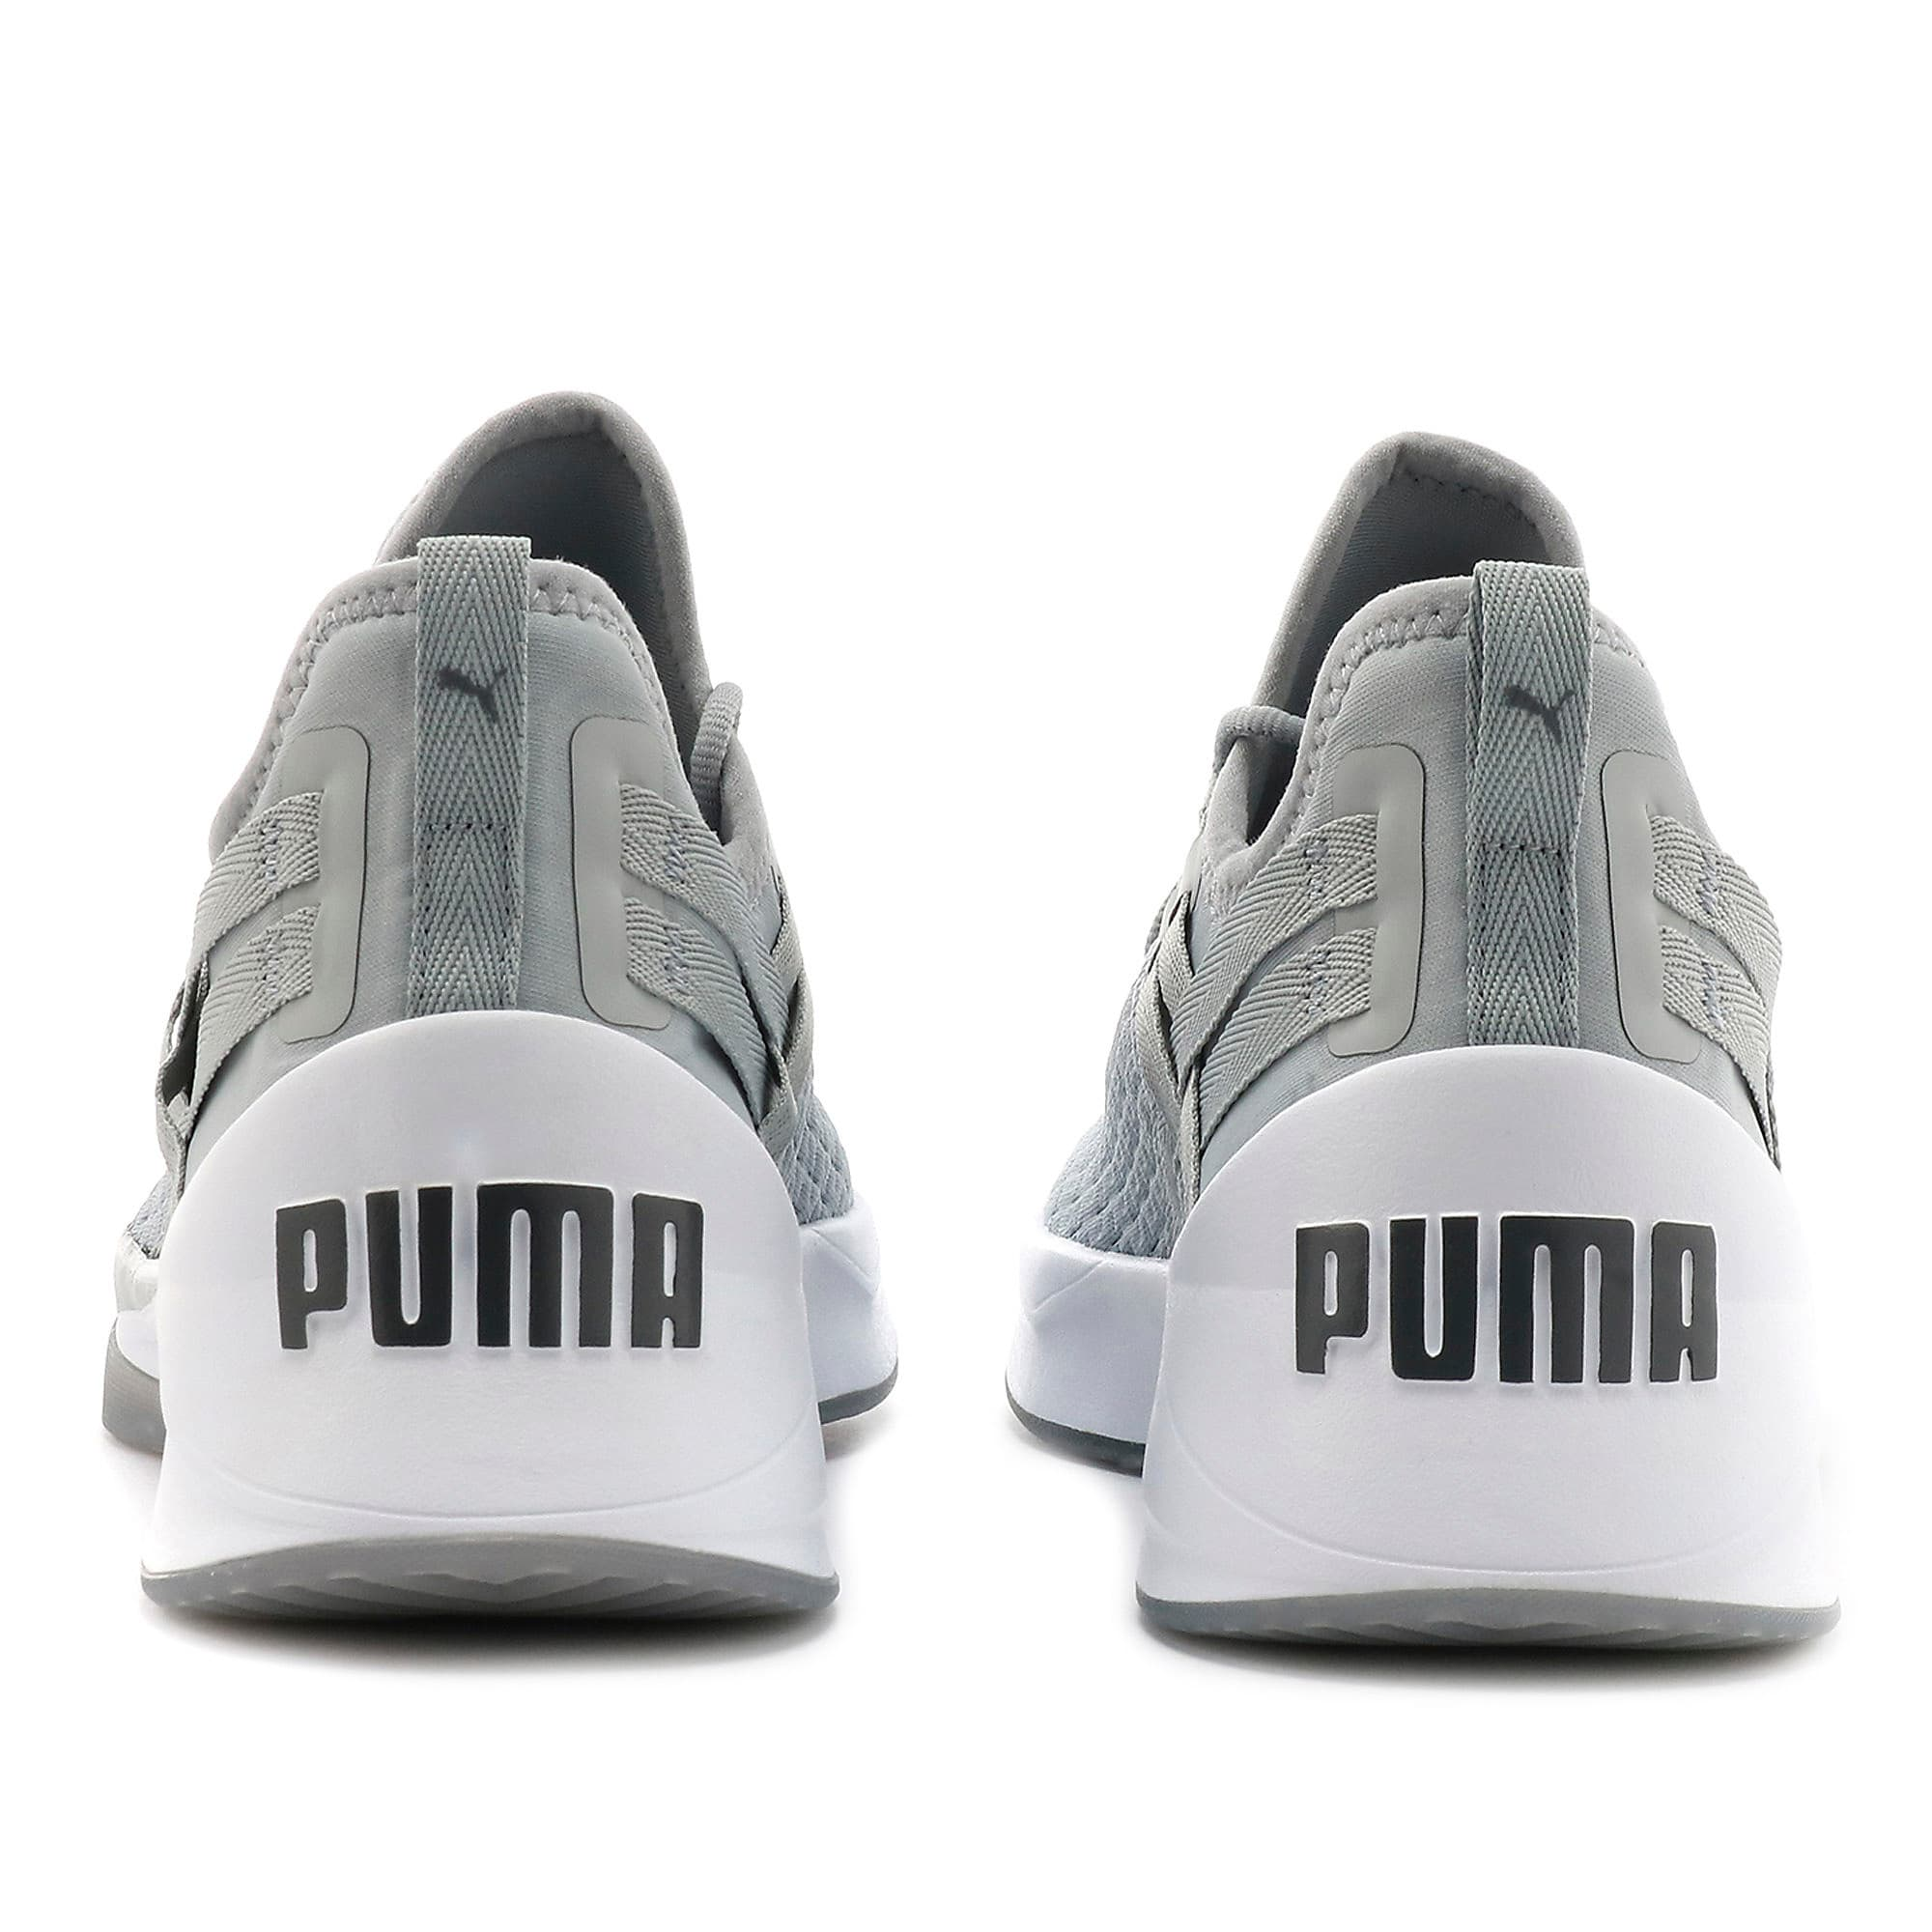 Thumbnail 3 of JAAB XT ウィメンズ, Quarry-Puma White, medium-JPN